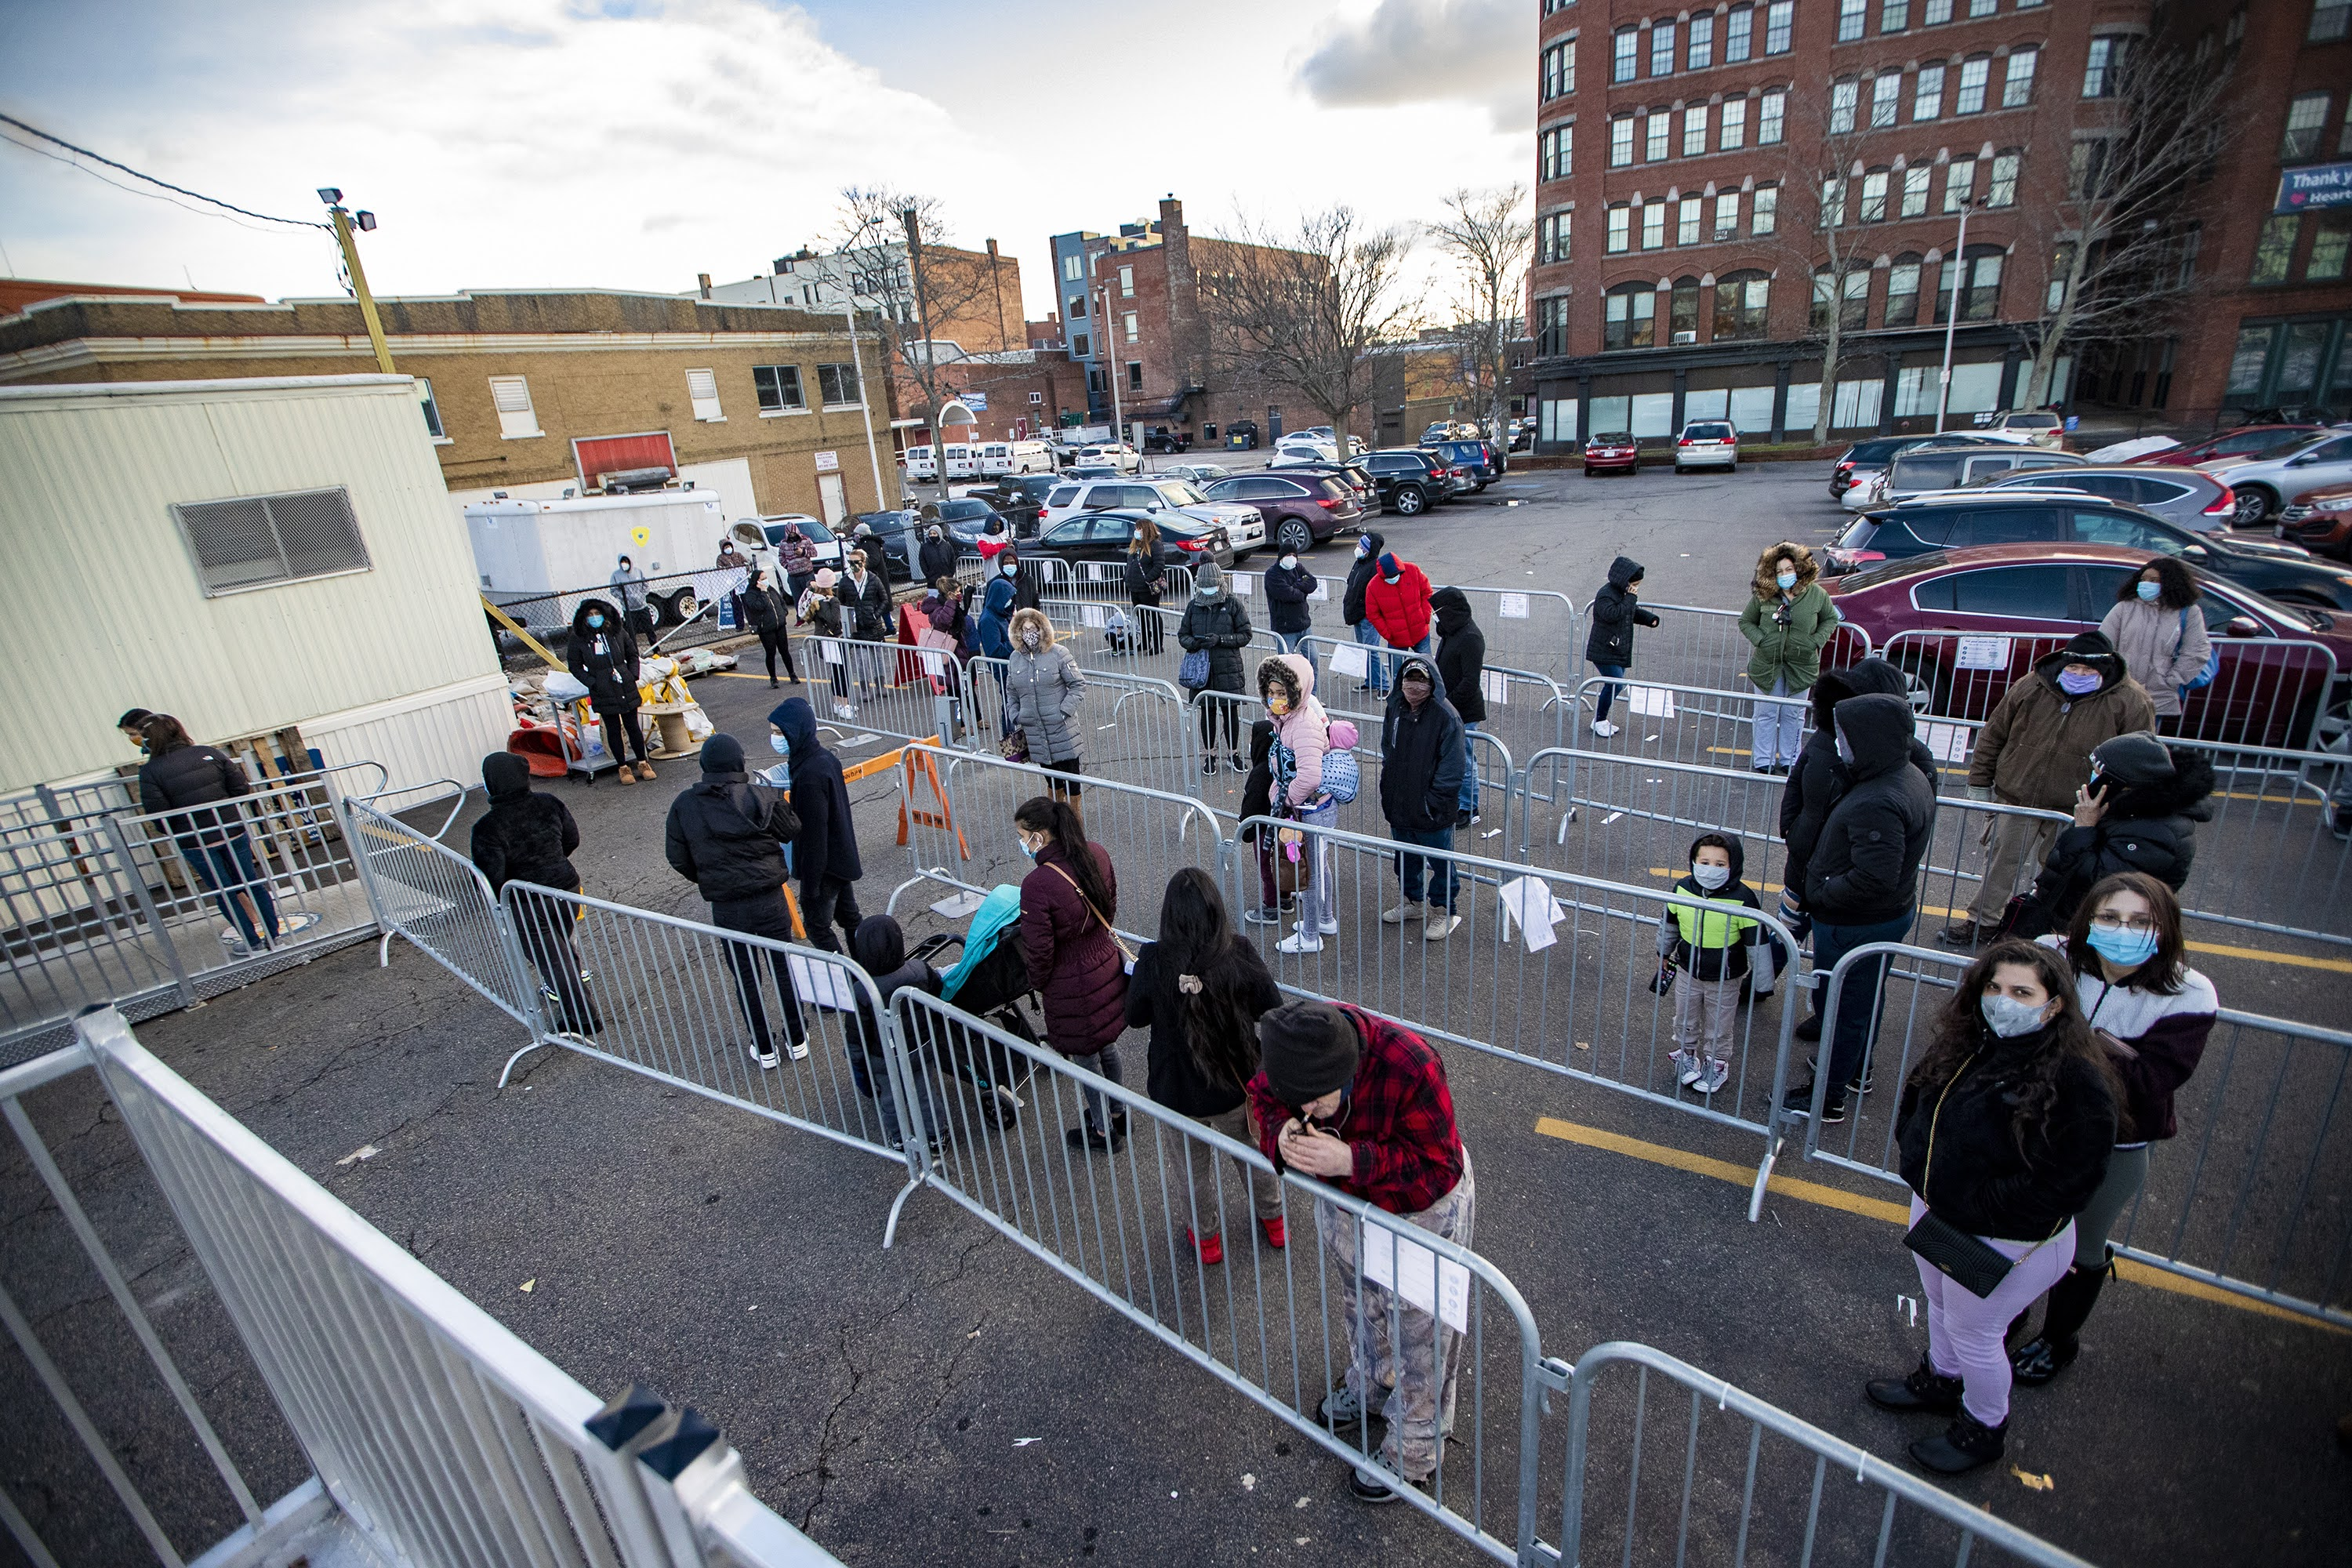 People wait in line for COVID-19 testing at the Lynn Community Health Center on Monday. (Jesse Costa/WBUR)